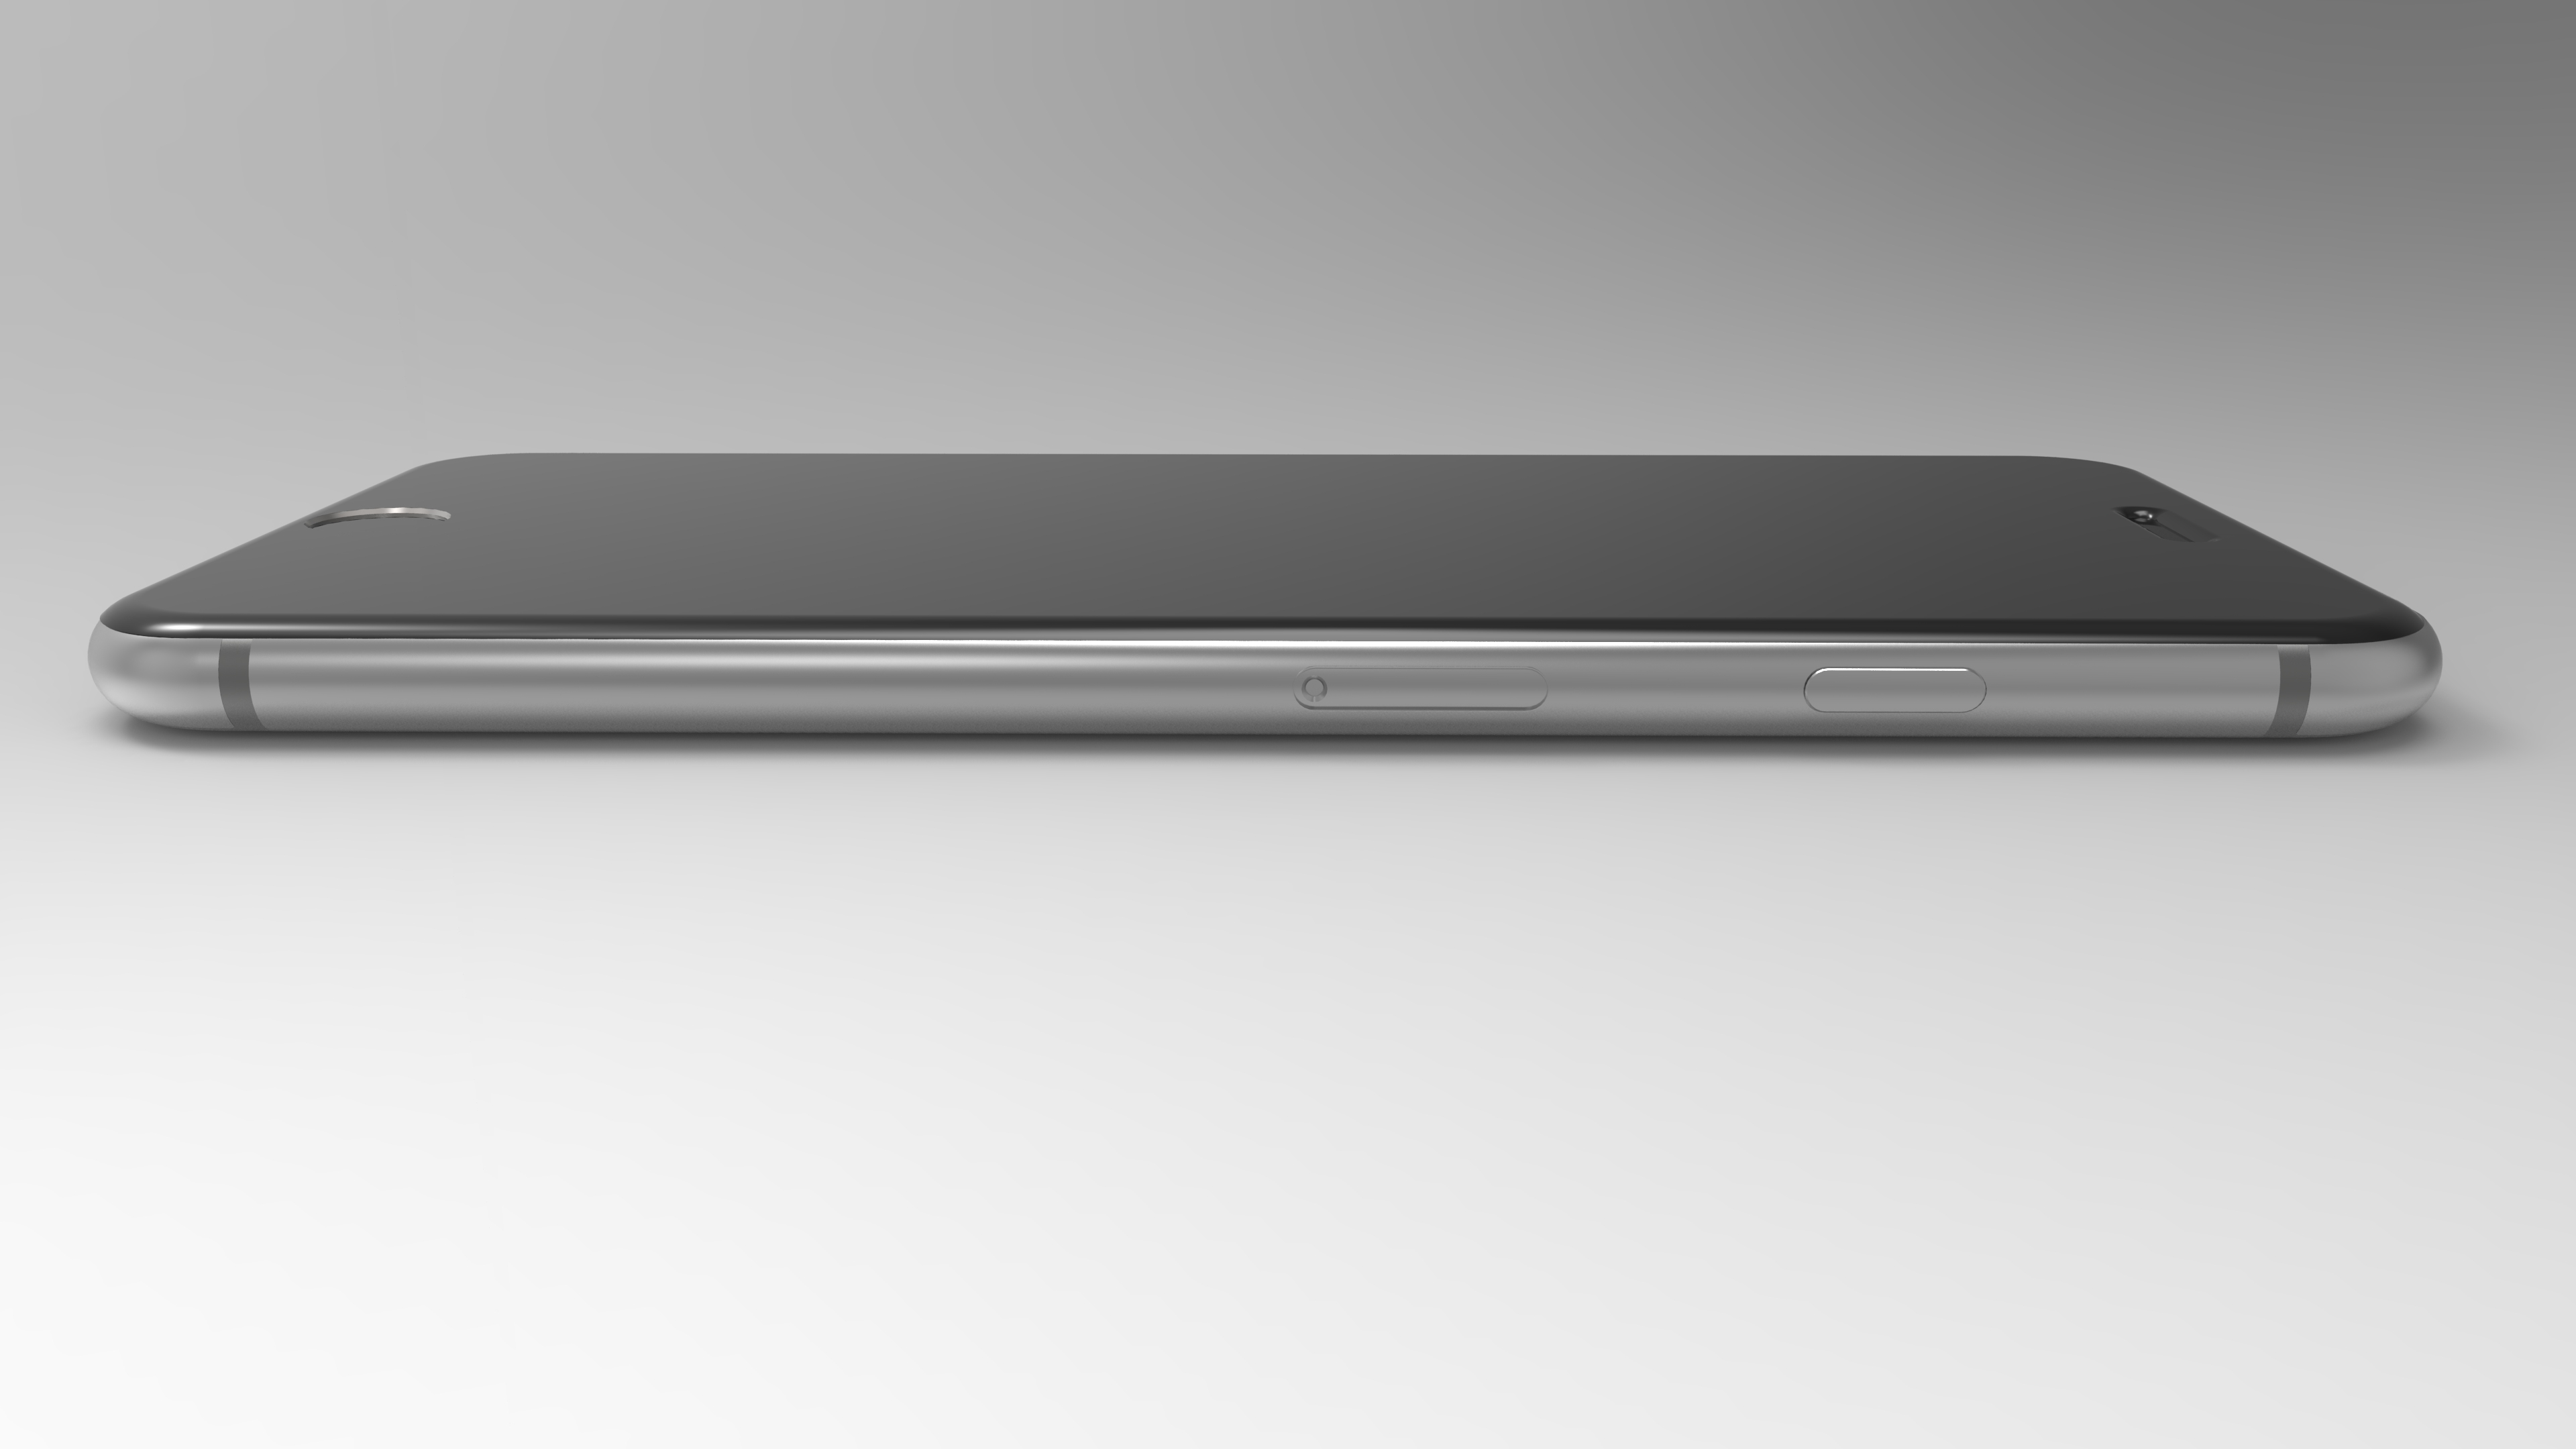 iPhone-6-render02-3840x2160_4K.jpg